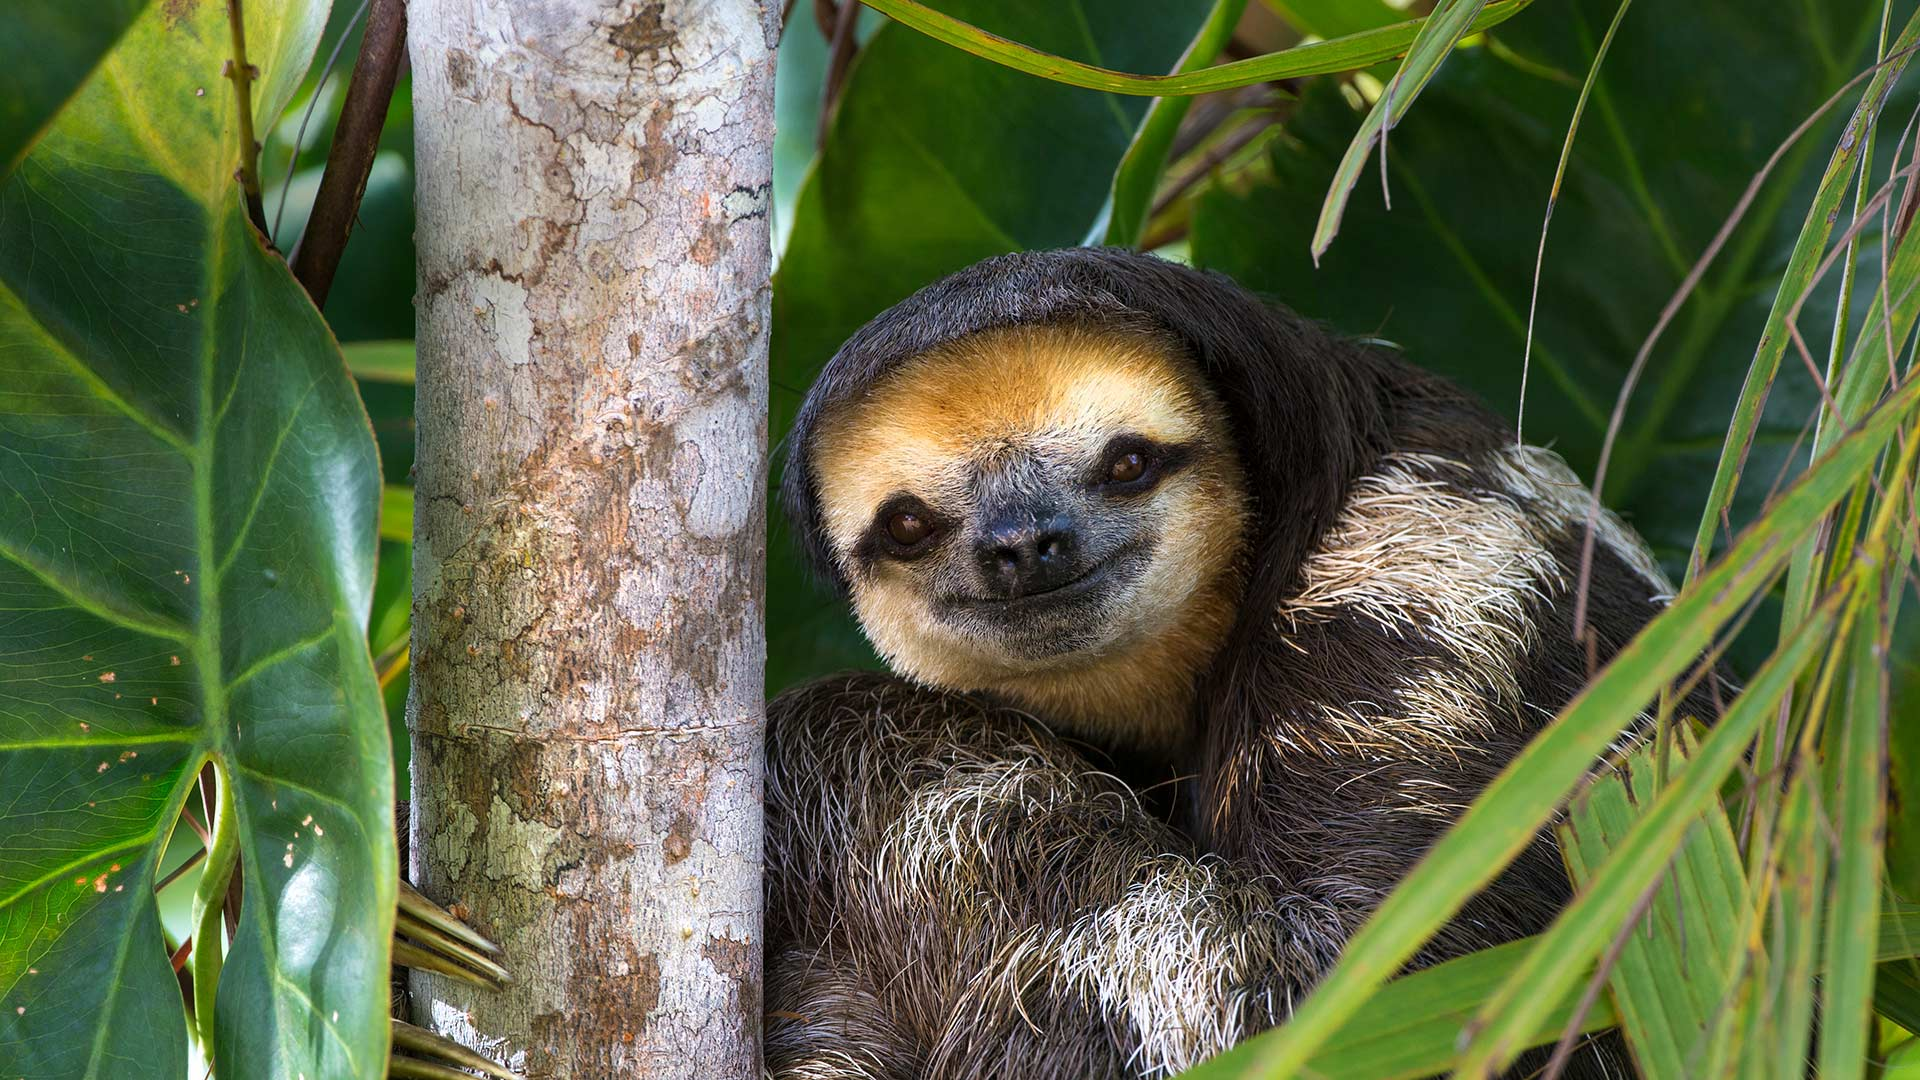 Pale-throated sloth perched in a tree on Sloth Island, near Bartica on the Essequibo River, Guyana (© Suzi Eszterhas/Minden Pictures)(Bing United States)